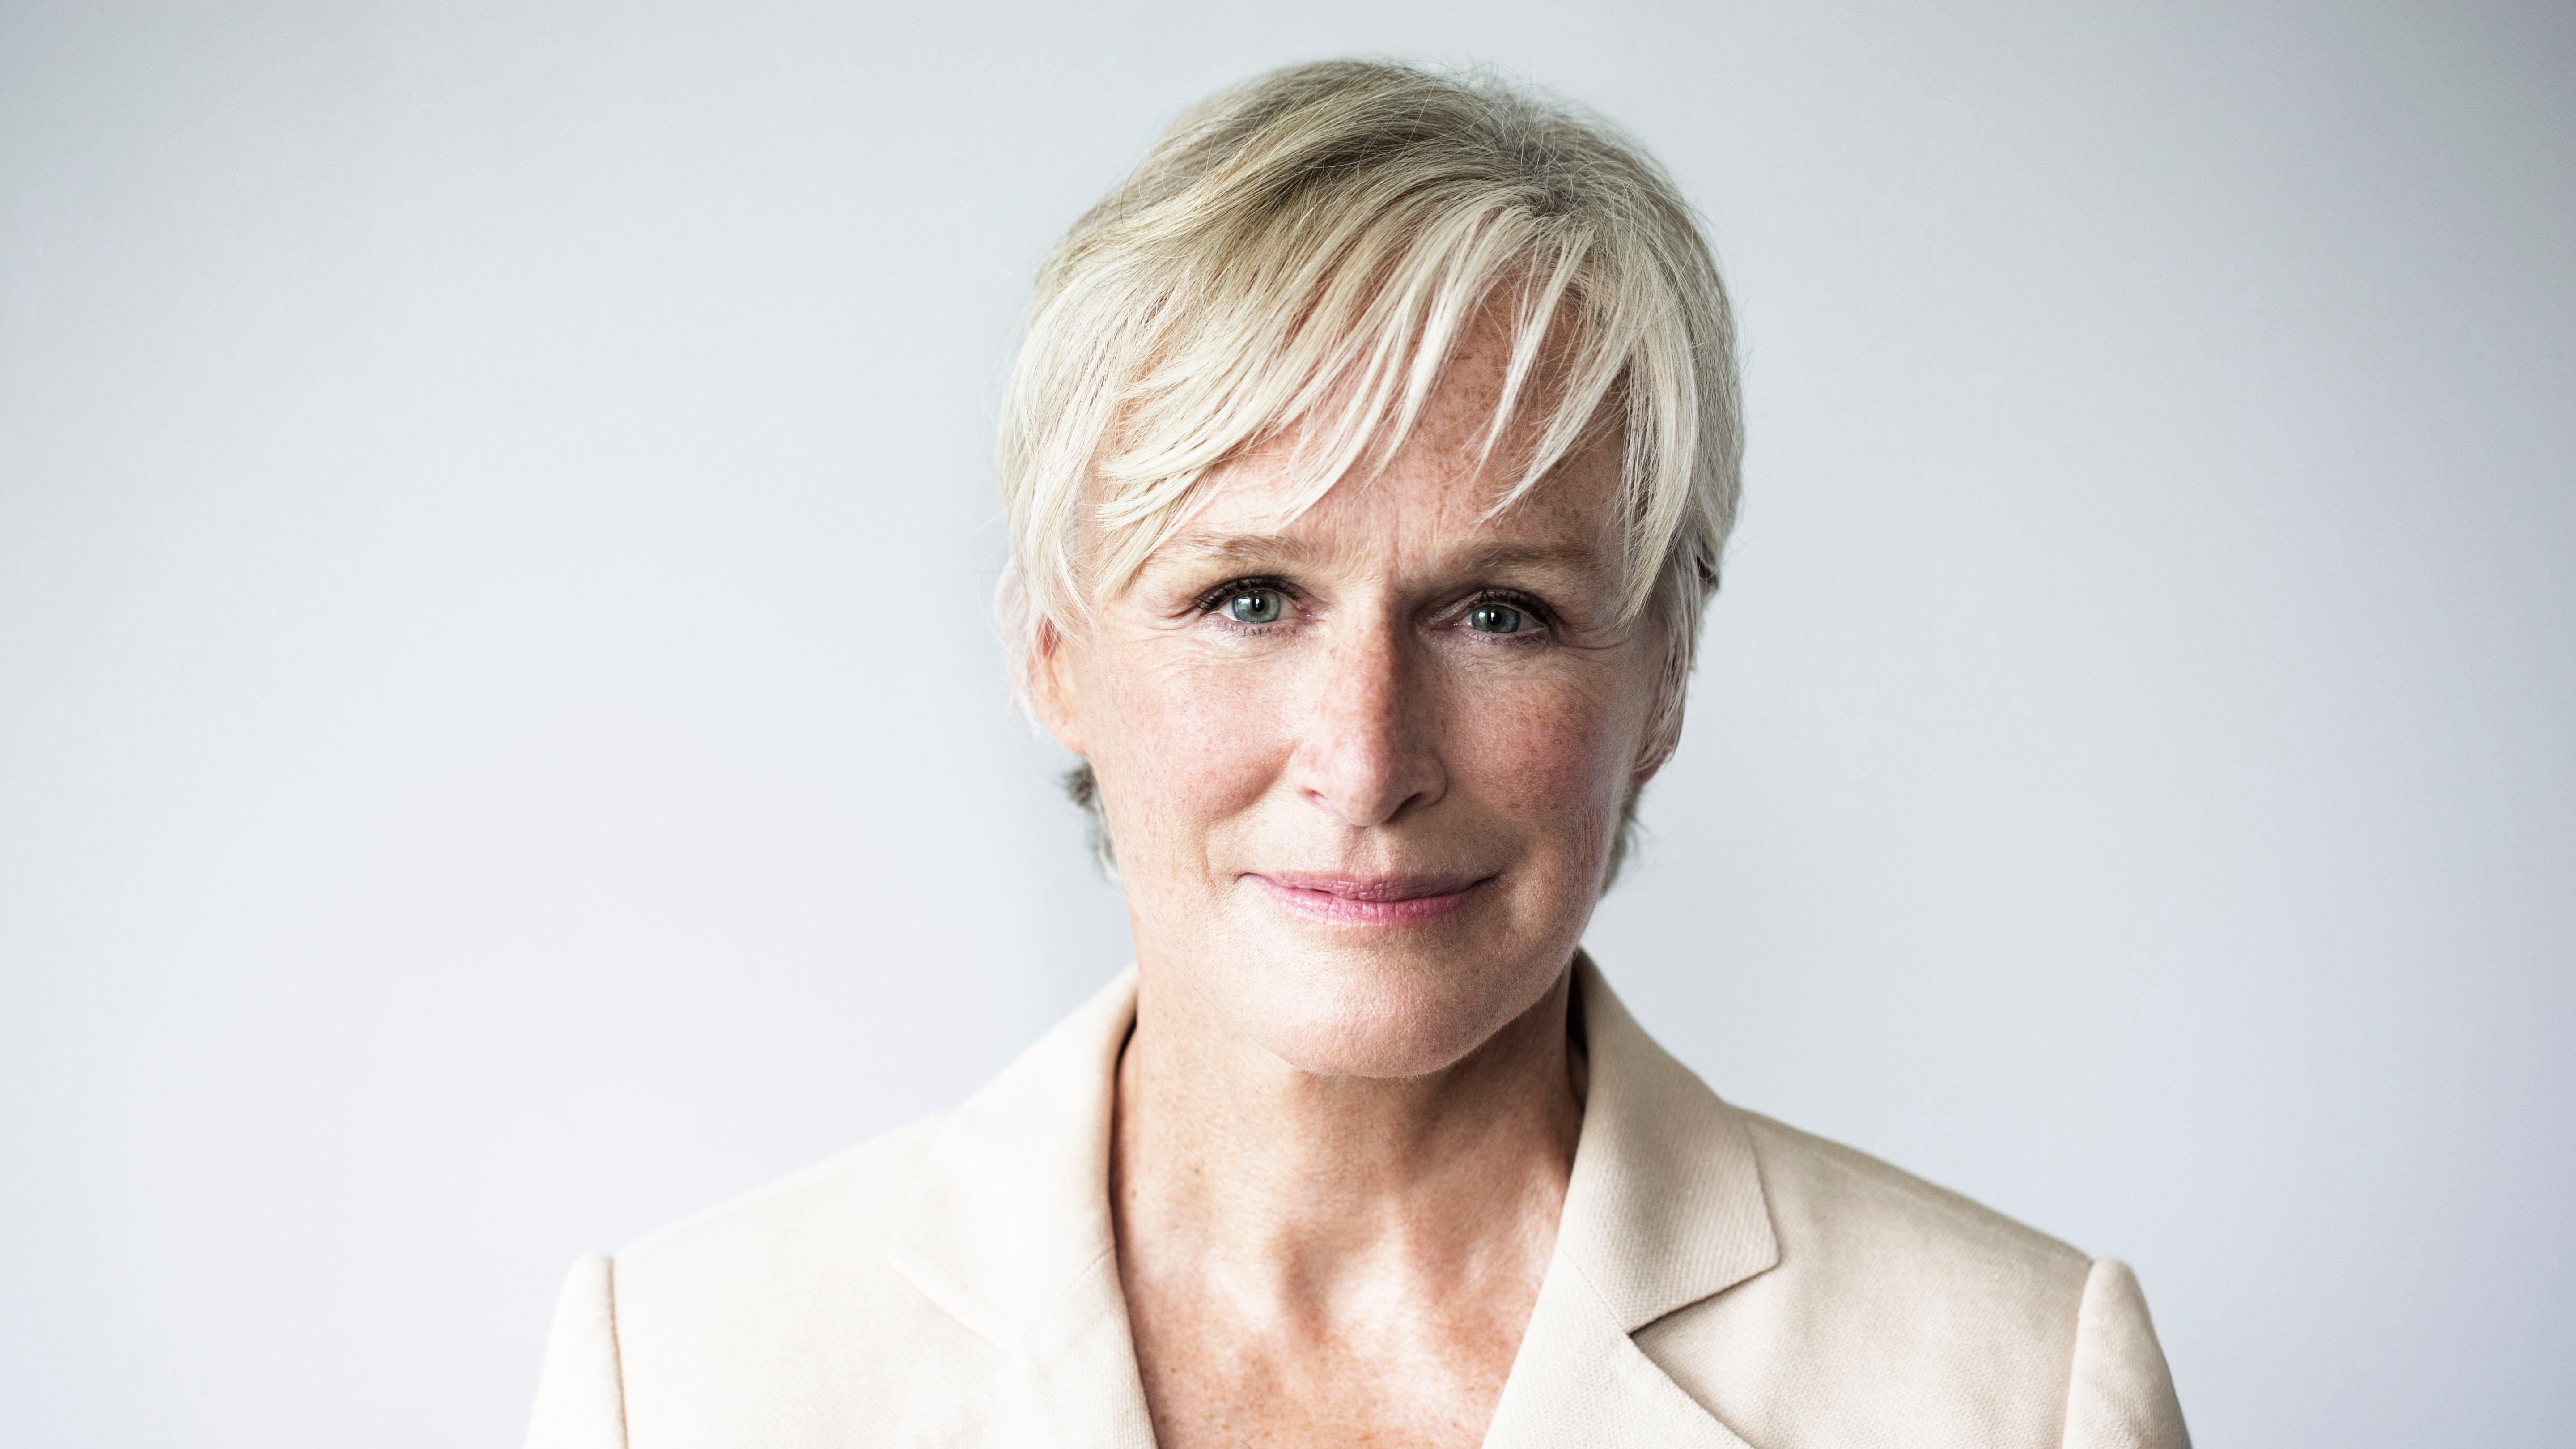 Glenn Close: Glenn Close: 'My Head Is In The Wrong Place' If I Stress